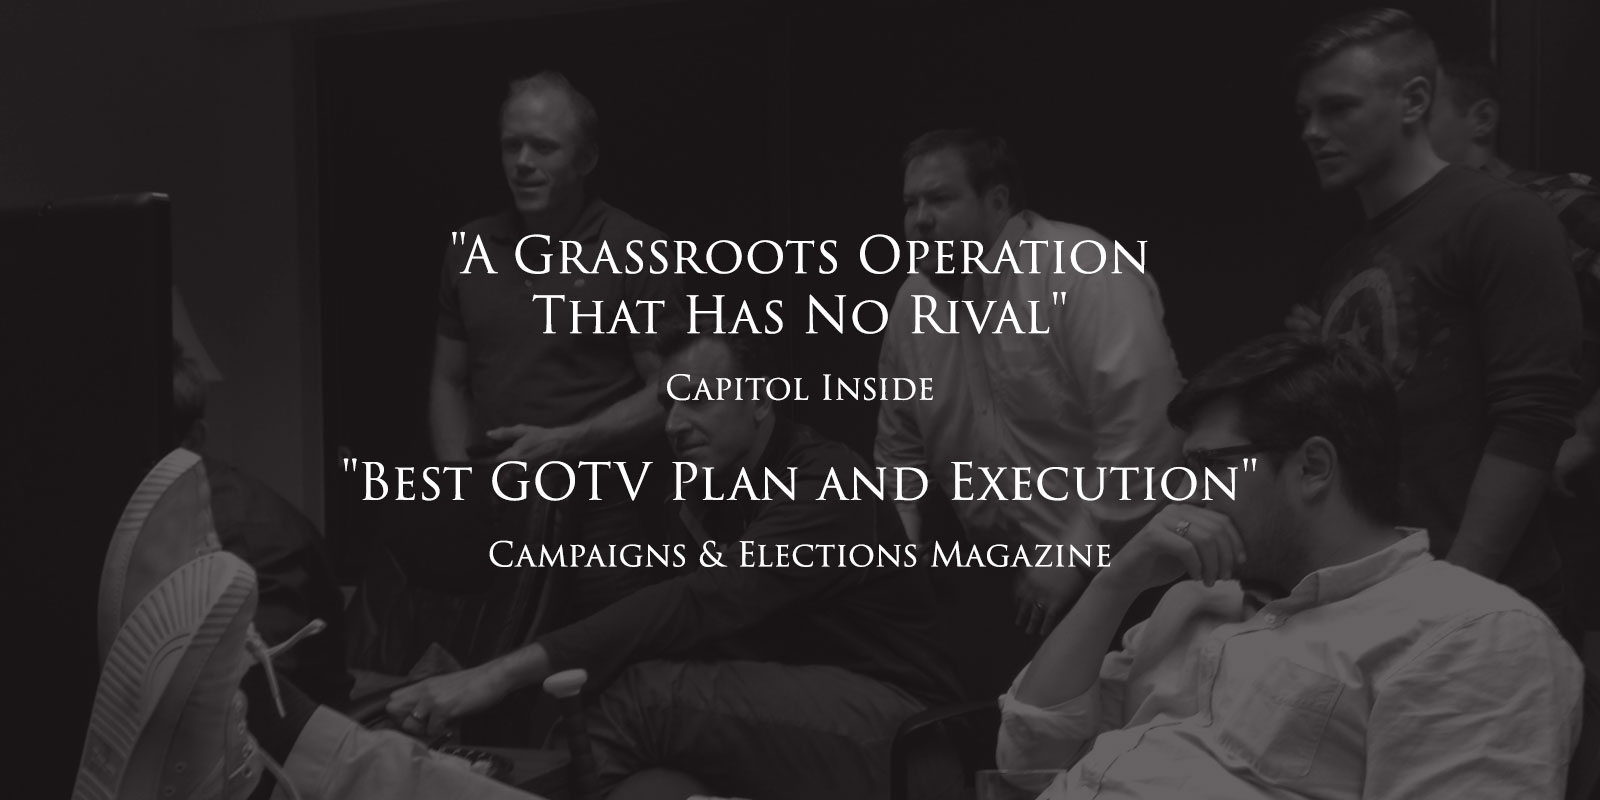 """A Grassroots Operation That Has No Rival"" and ""Best GOTV Plan and Execution"""